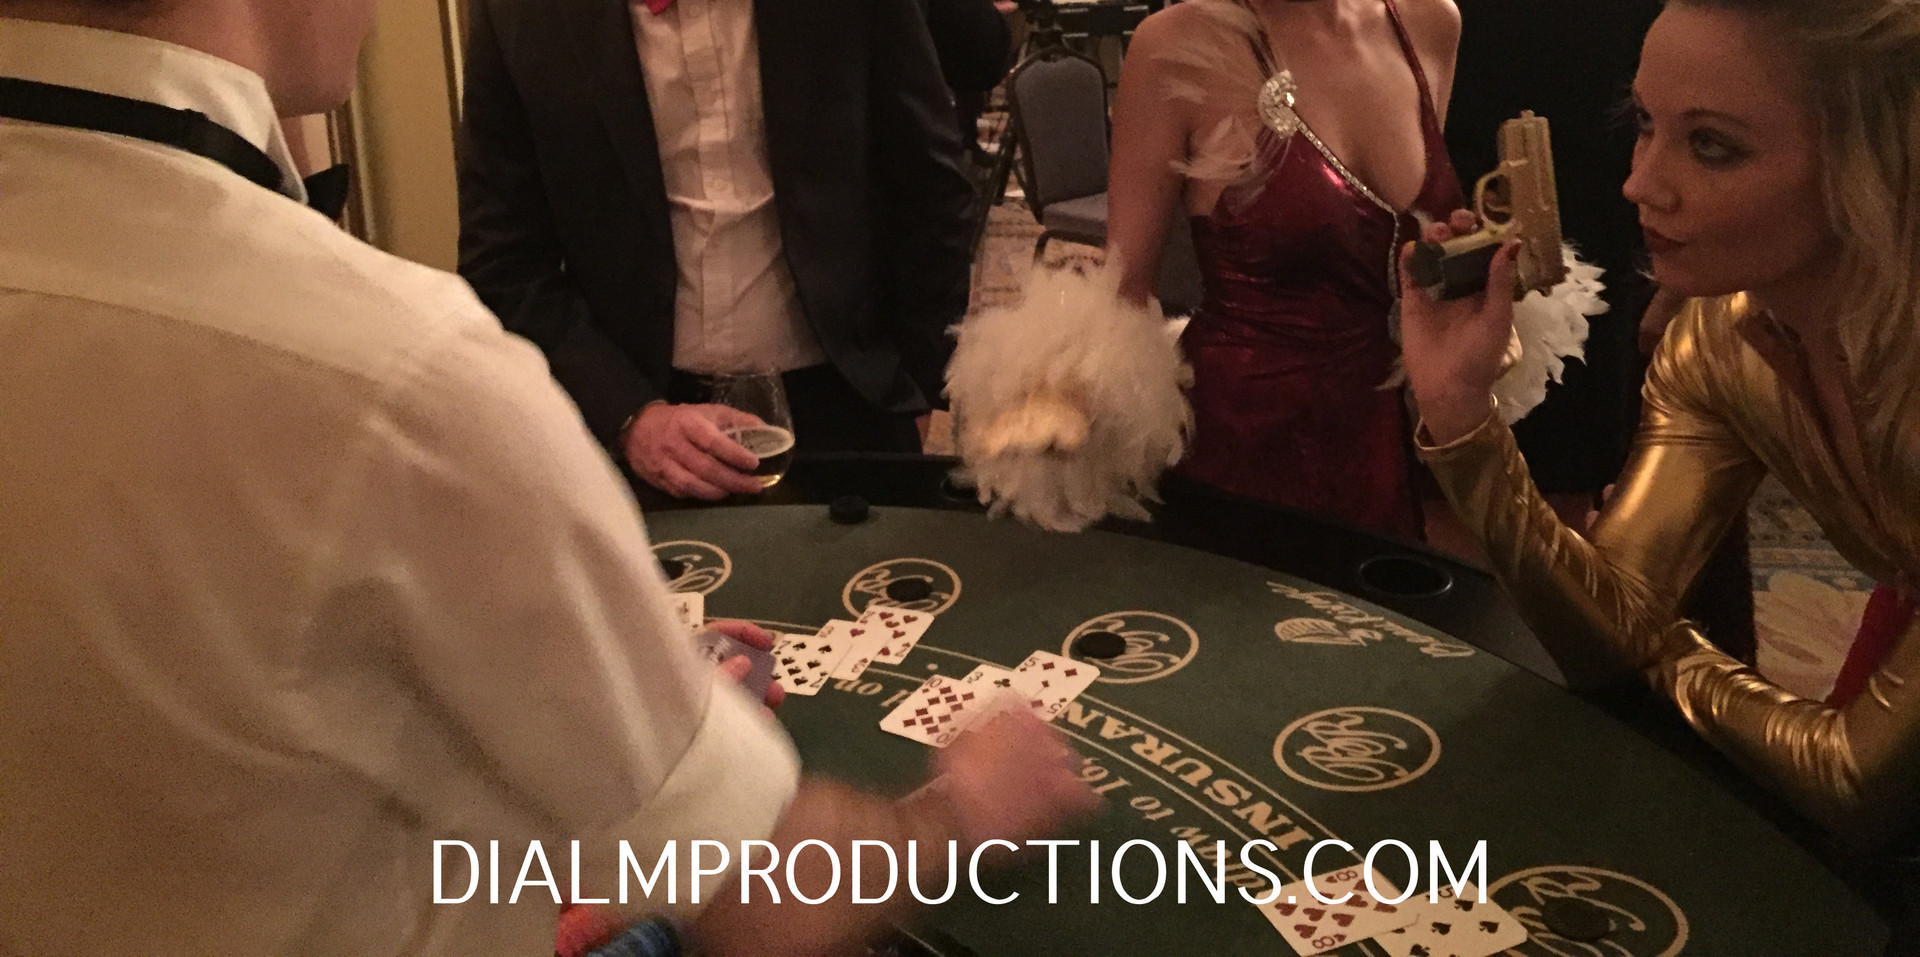 Casino party rentals with Show Girls los